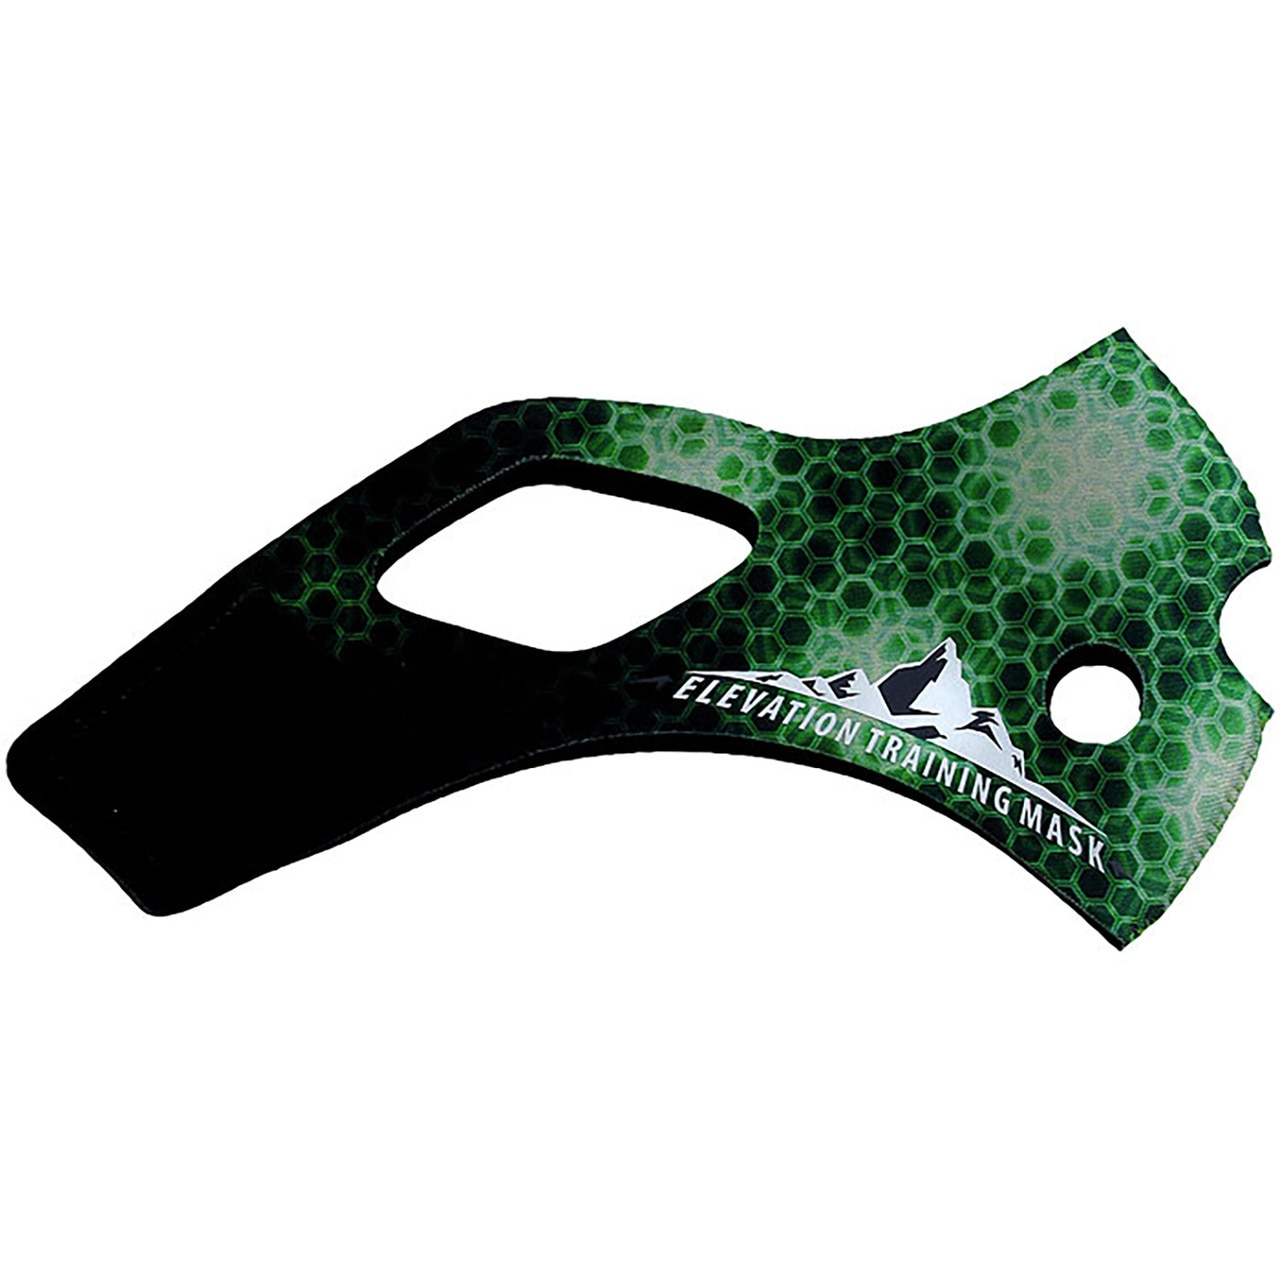 Green Elevation Training Mask 2.0 Smasher Sleeve